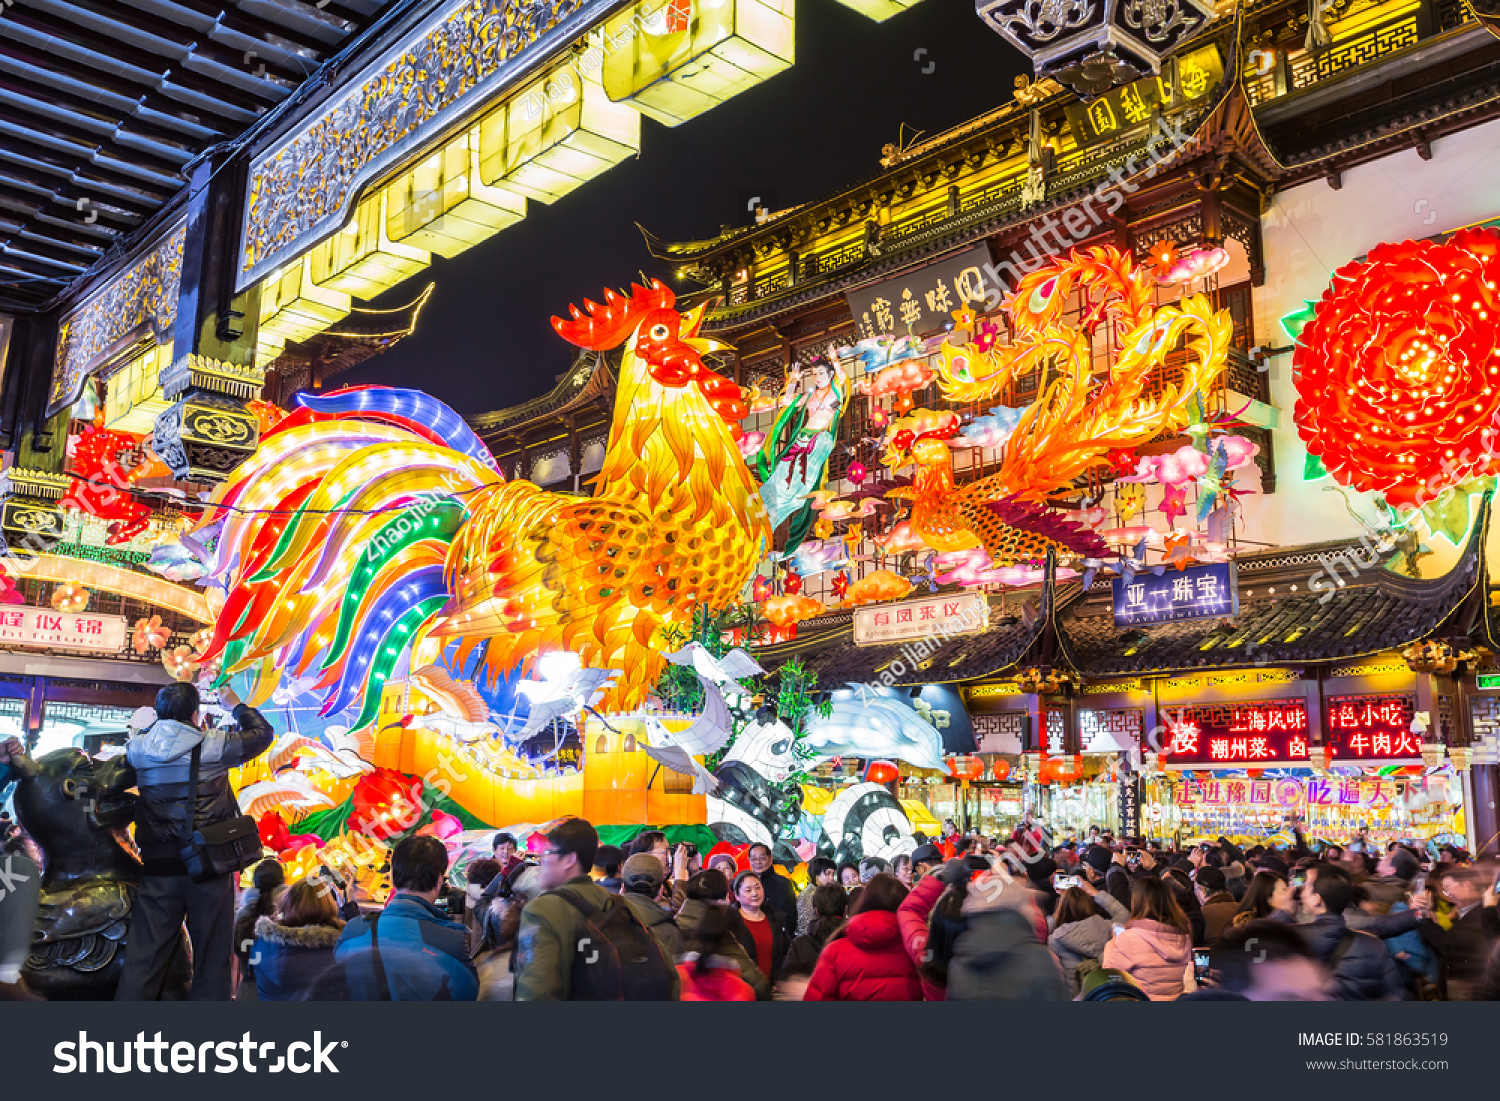 how to say lantern festival in chinese